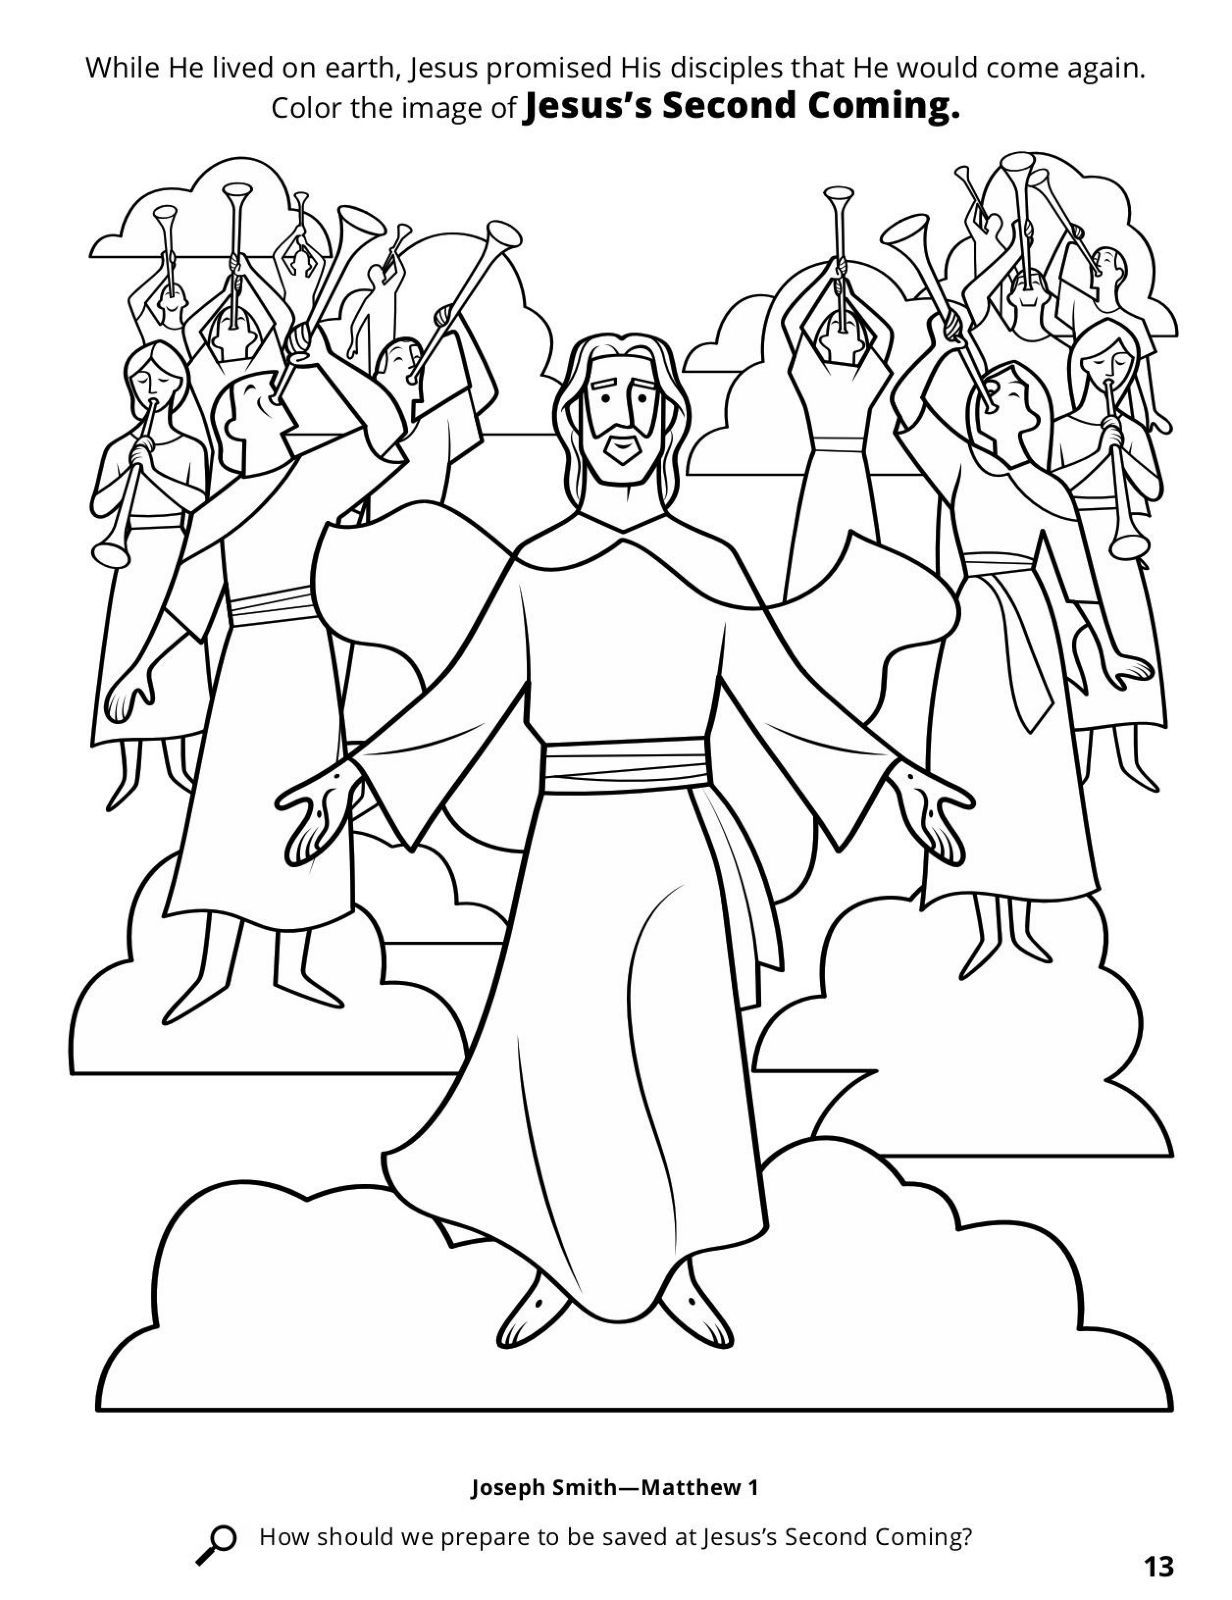 Related Image Jesus Second Coming Coloring Pages Christian Coloring [ 1600 x 1232 Pixel ]